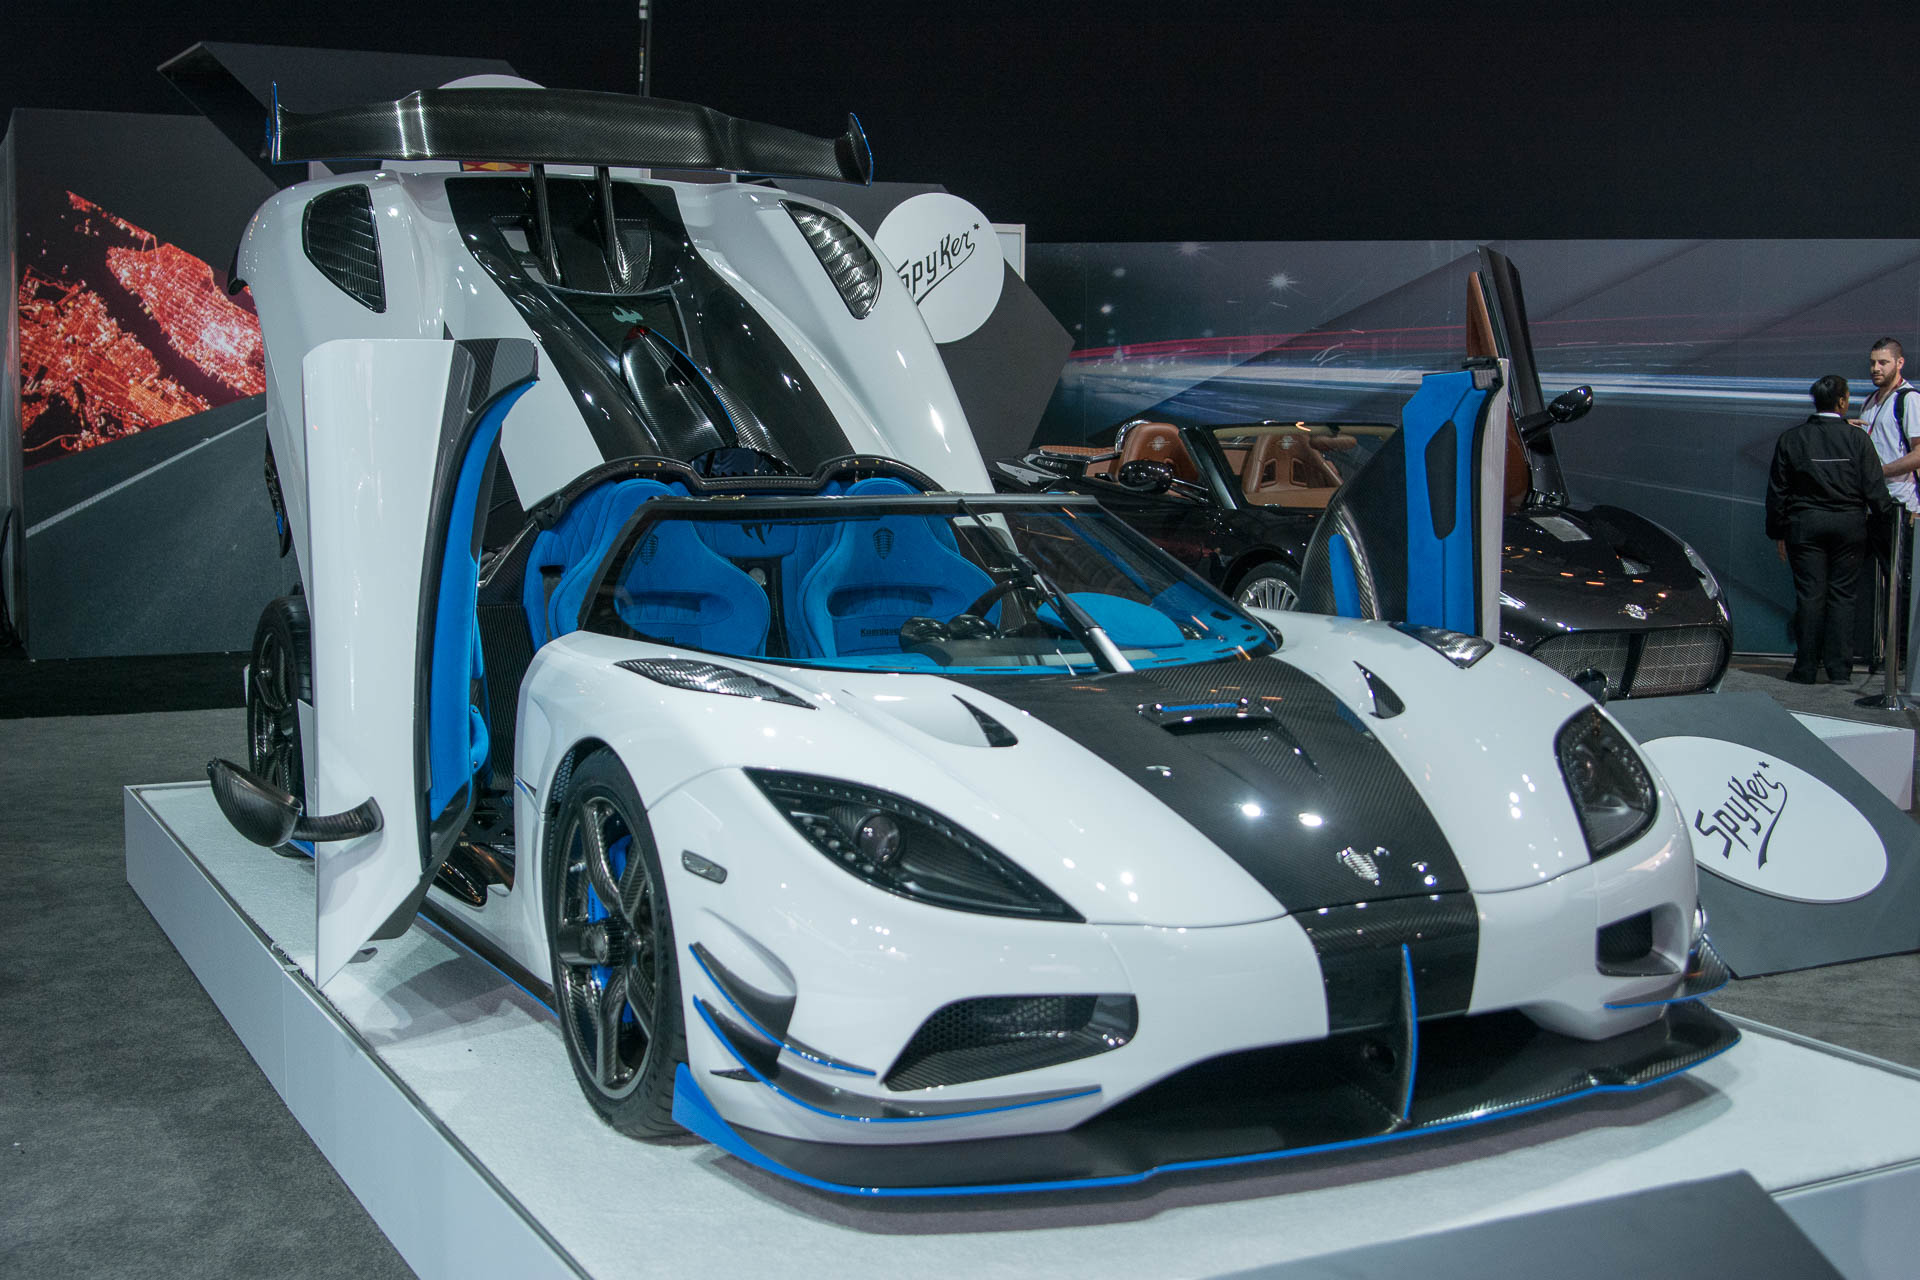 koenigsegg s one off 1 360 hp agera rs1 invades new york